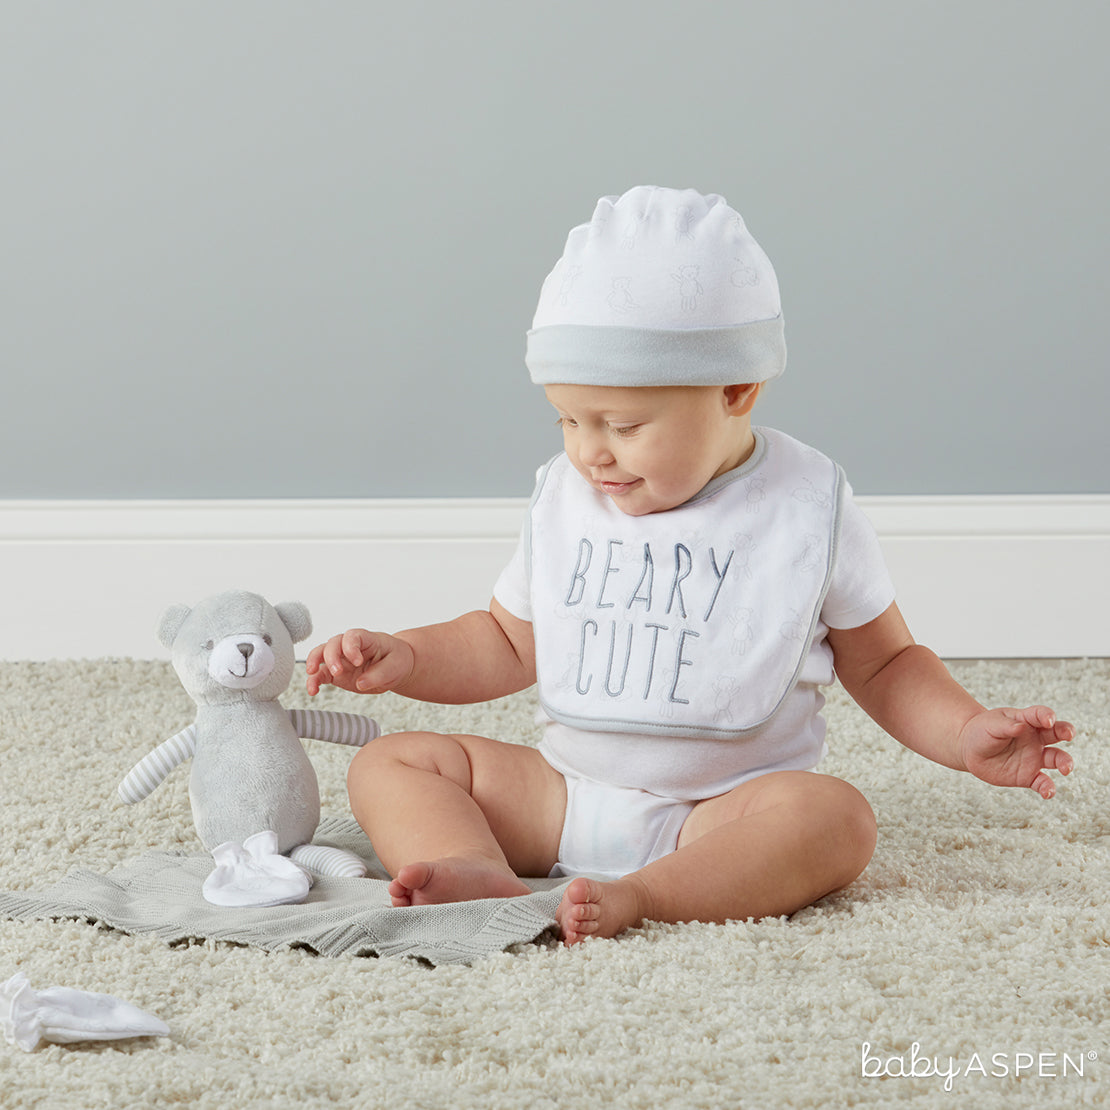 Beary Cute 5 Piece Home Set | 5 Great Gender Neutral Gifts | Baby Aspen